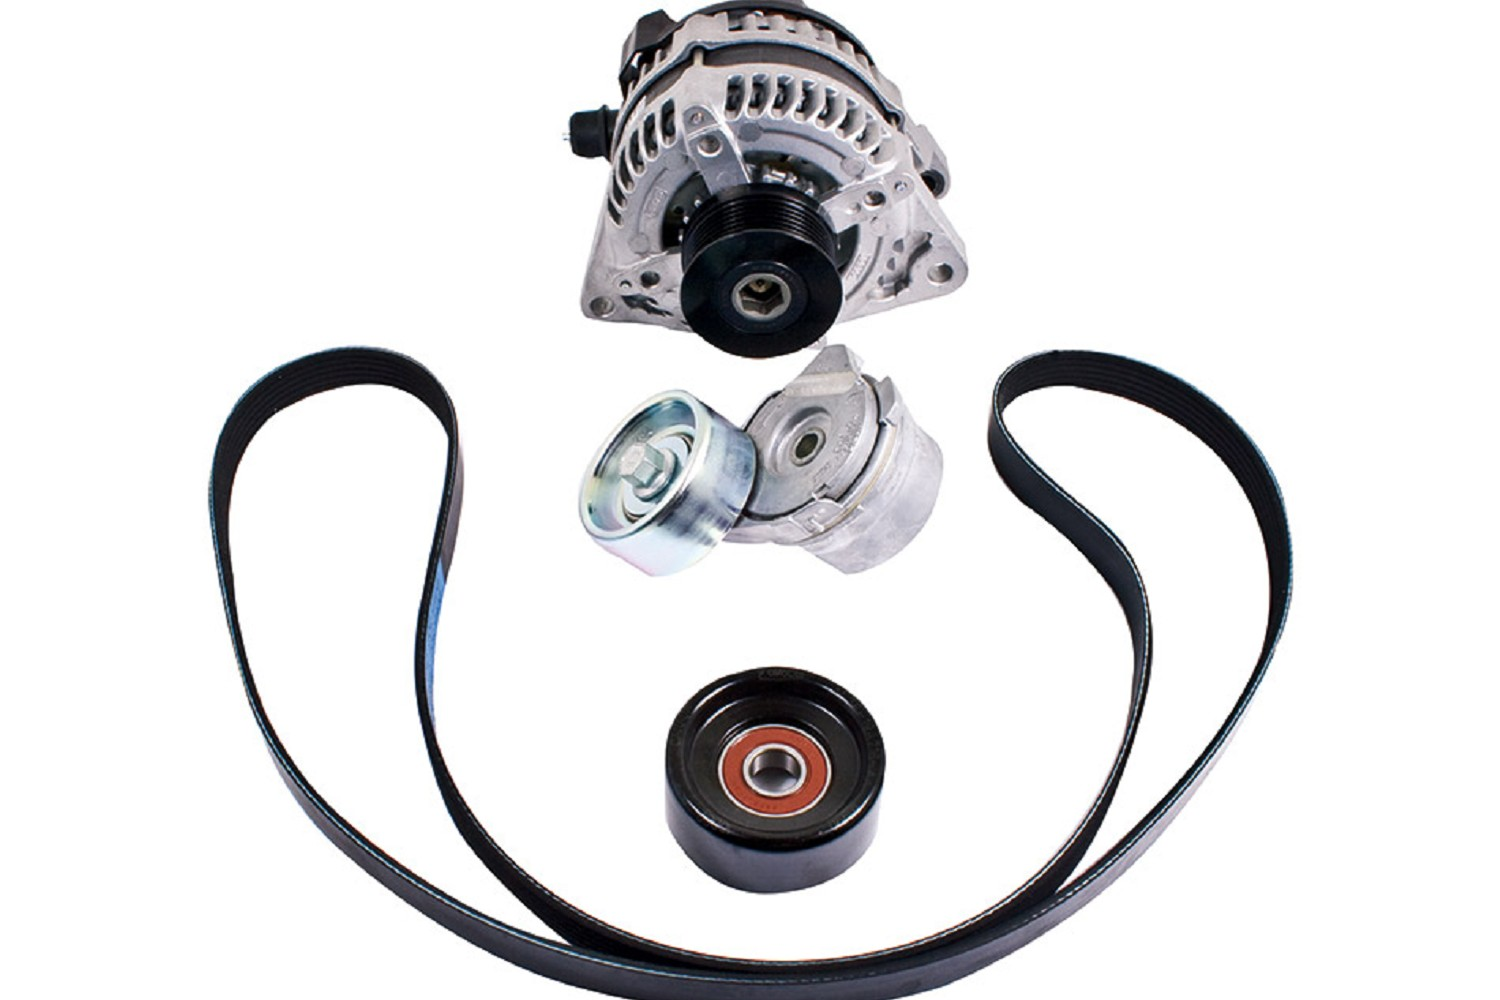 Ford Performance S197 Mustang Boss 302 Alternator Kit All 2011 For A Wiring Harness Kits 11 14 50l